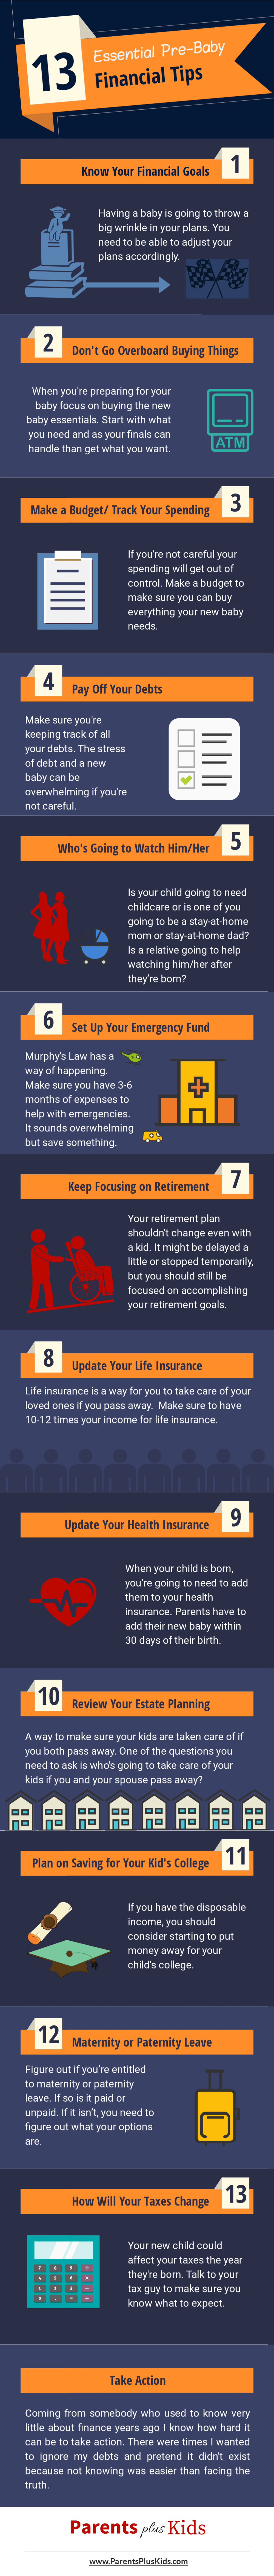 How to Prepare Financially for a Baby  Article giving tips and advice to prepare for baby. #infographic #budget #financialtips #prepareforbaby #budgetforbaby